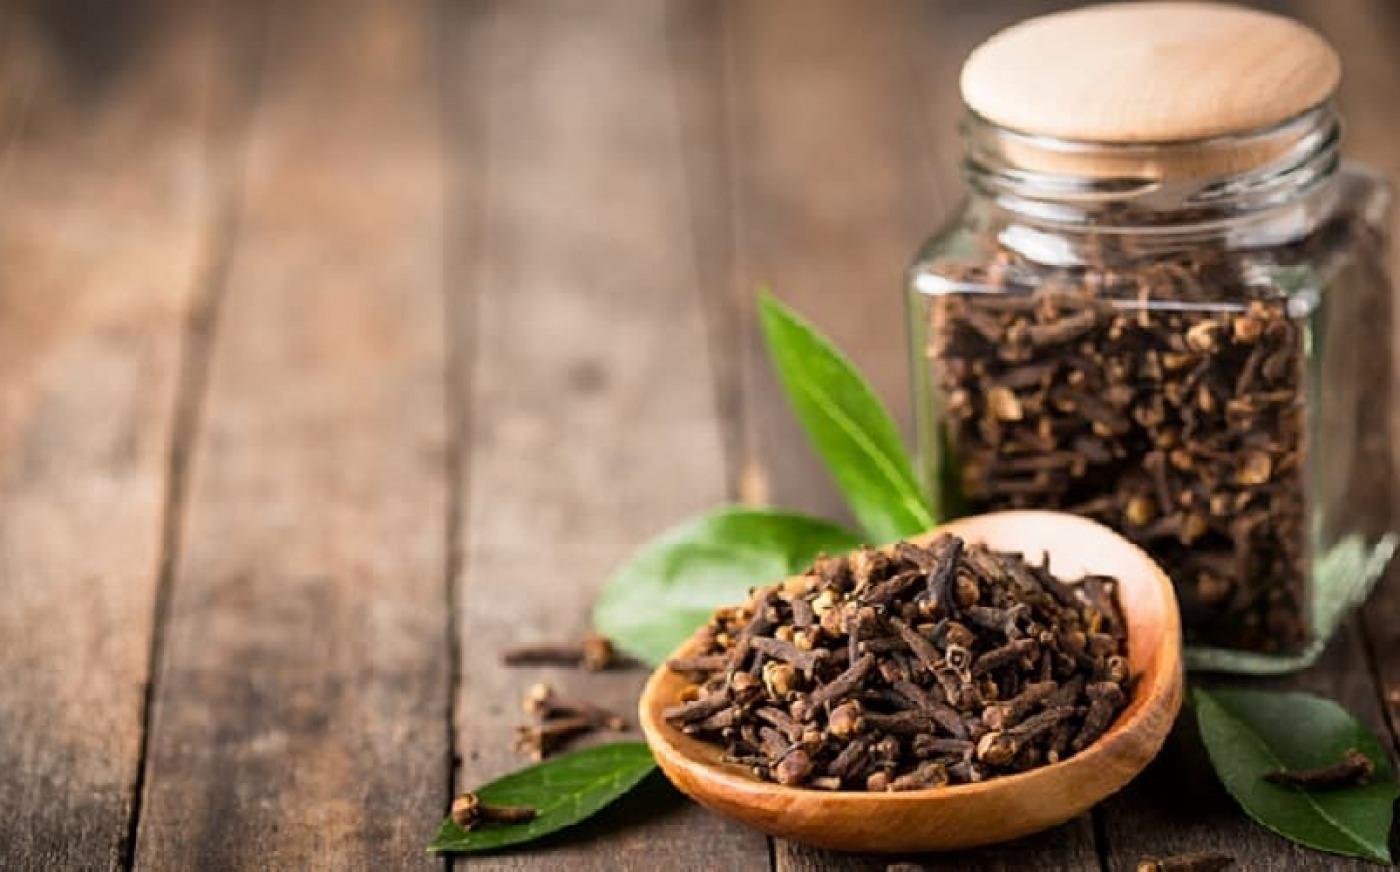 Clove to get pregnant naturally